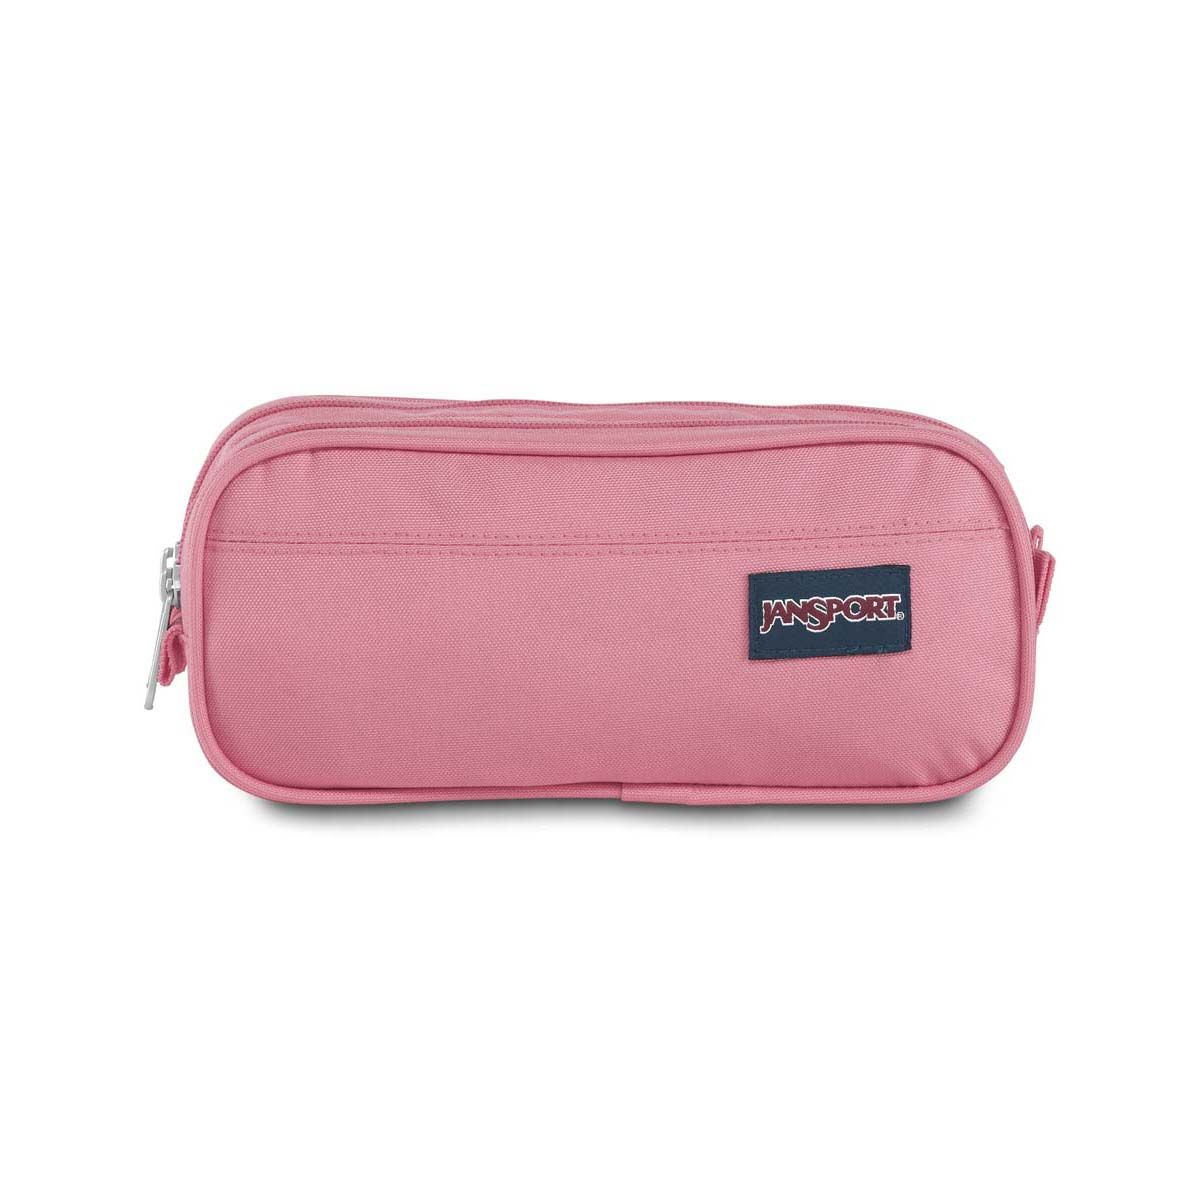 JanSport Large Accessory Pouch in Blackberry Mousse